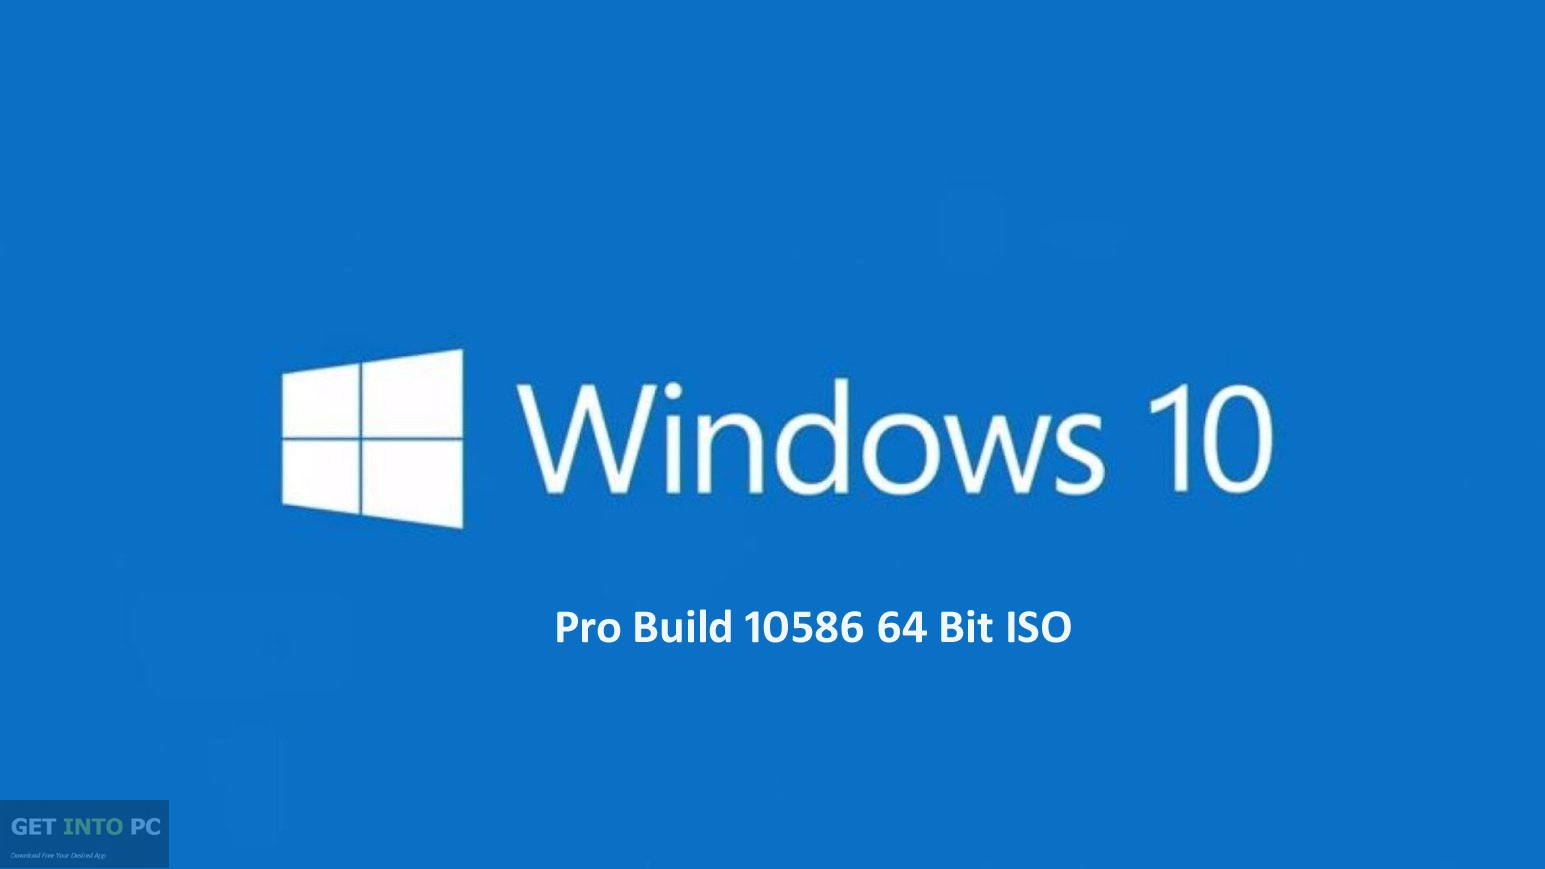 Windows 10 pro build 10586 64 bit iso free download for Window 10 pro